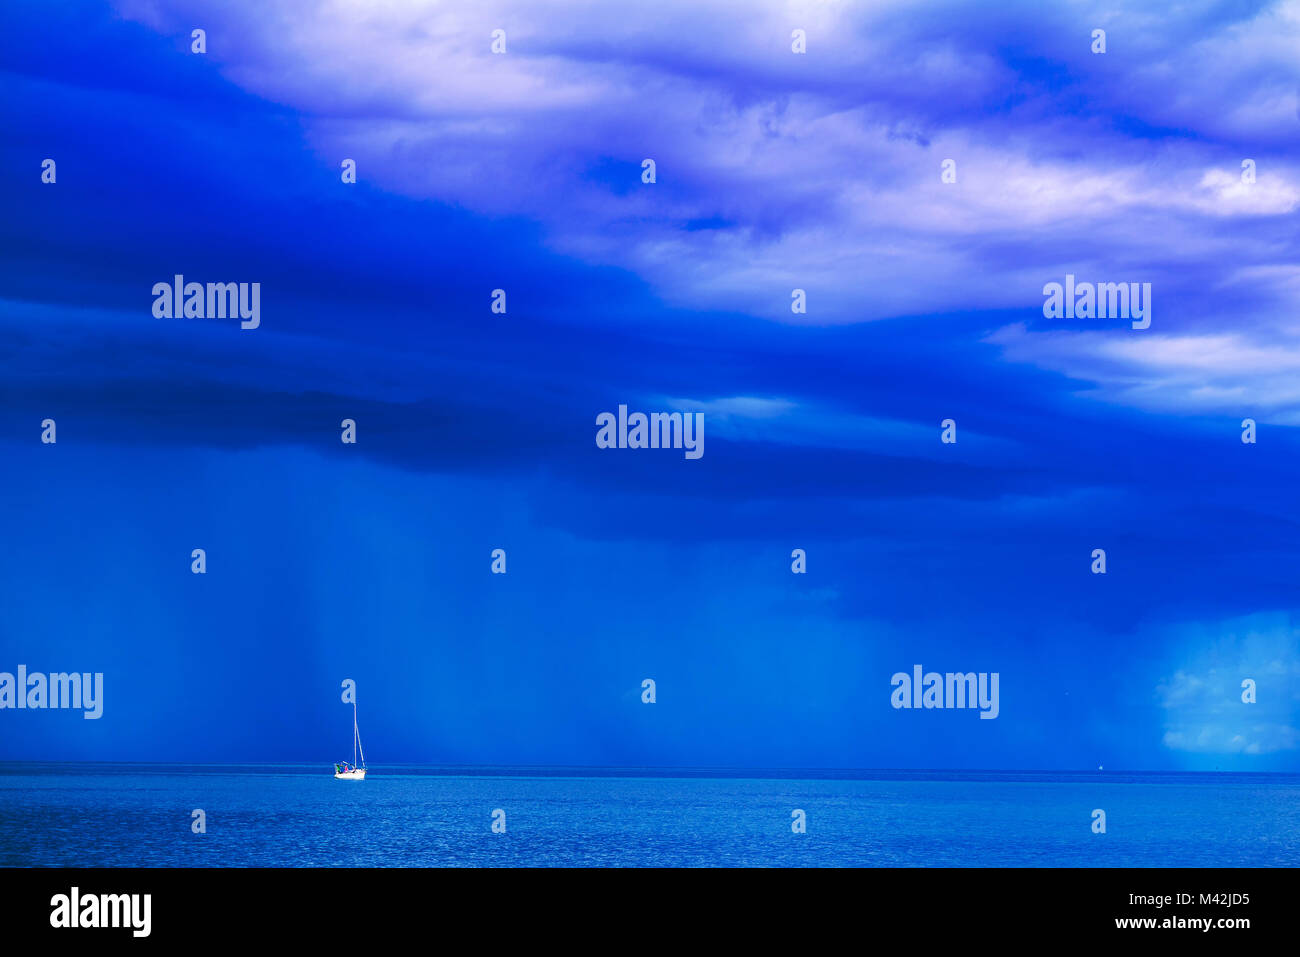 Sailing boat at stormy sea horizon with dark rainy clouds in background - Stock Image